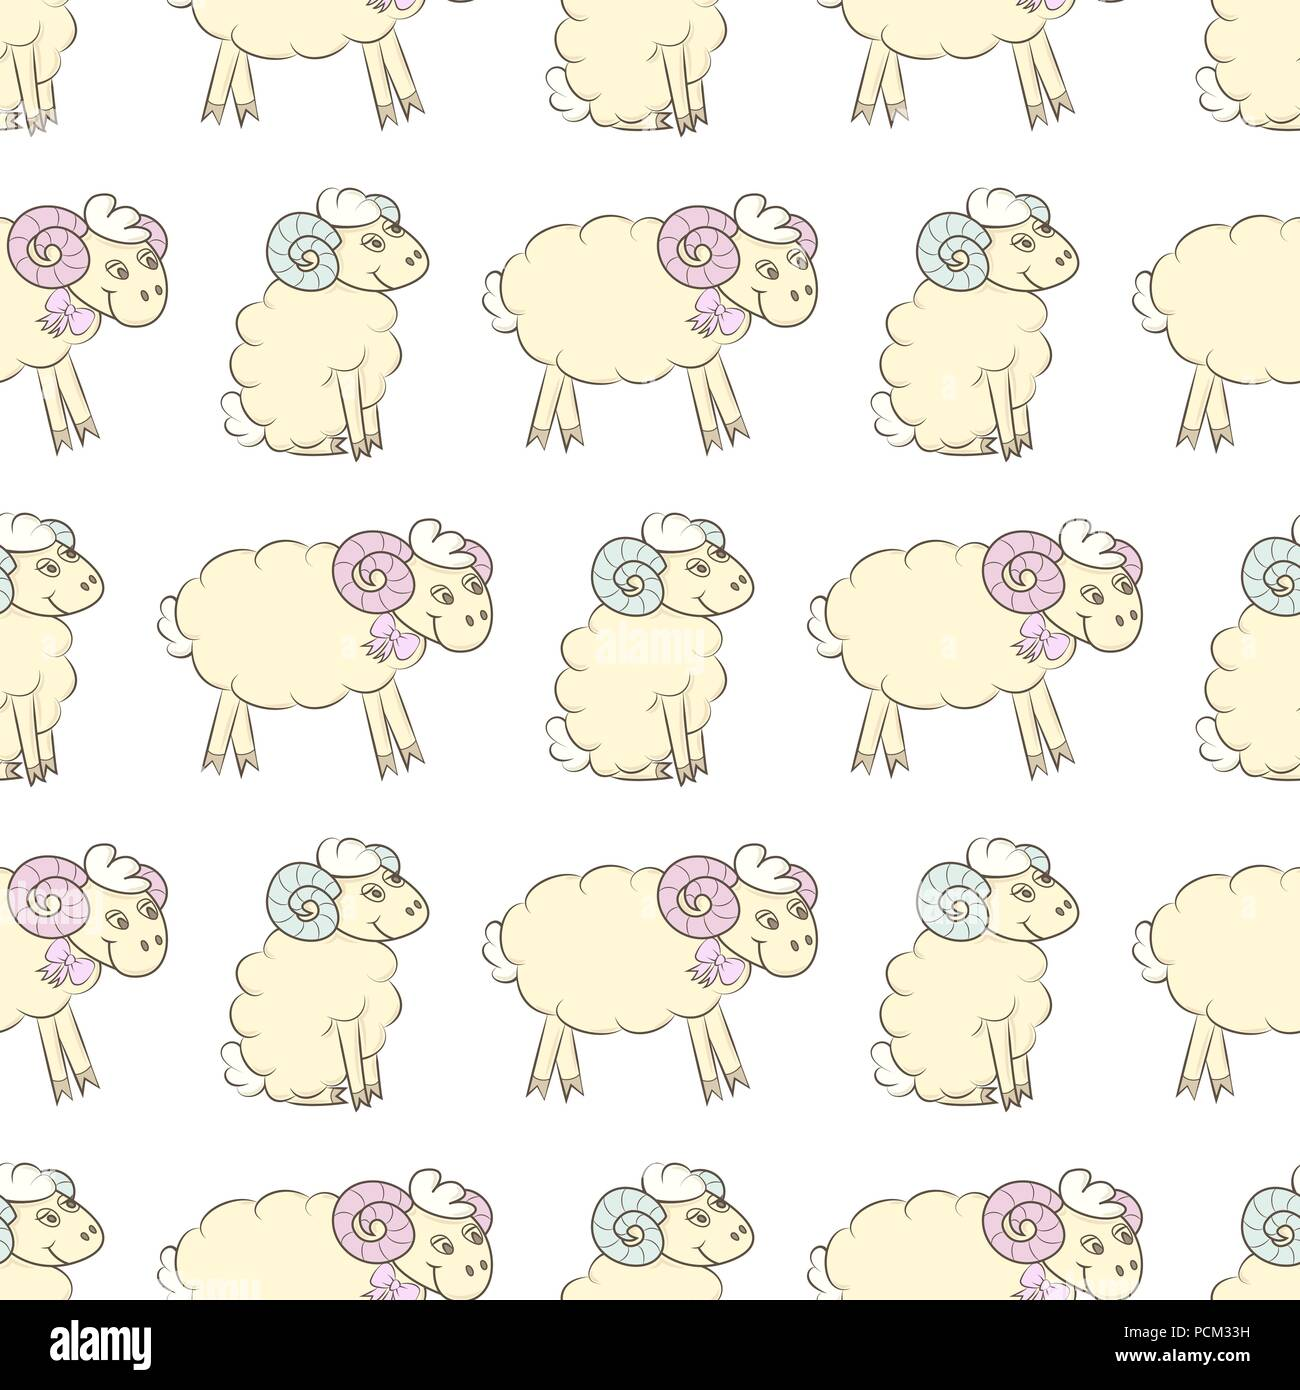 Cartoon Sheep Seamless Wallpaper Vector Illustration Pattern Background For Fabric